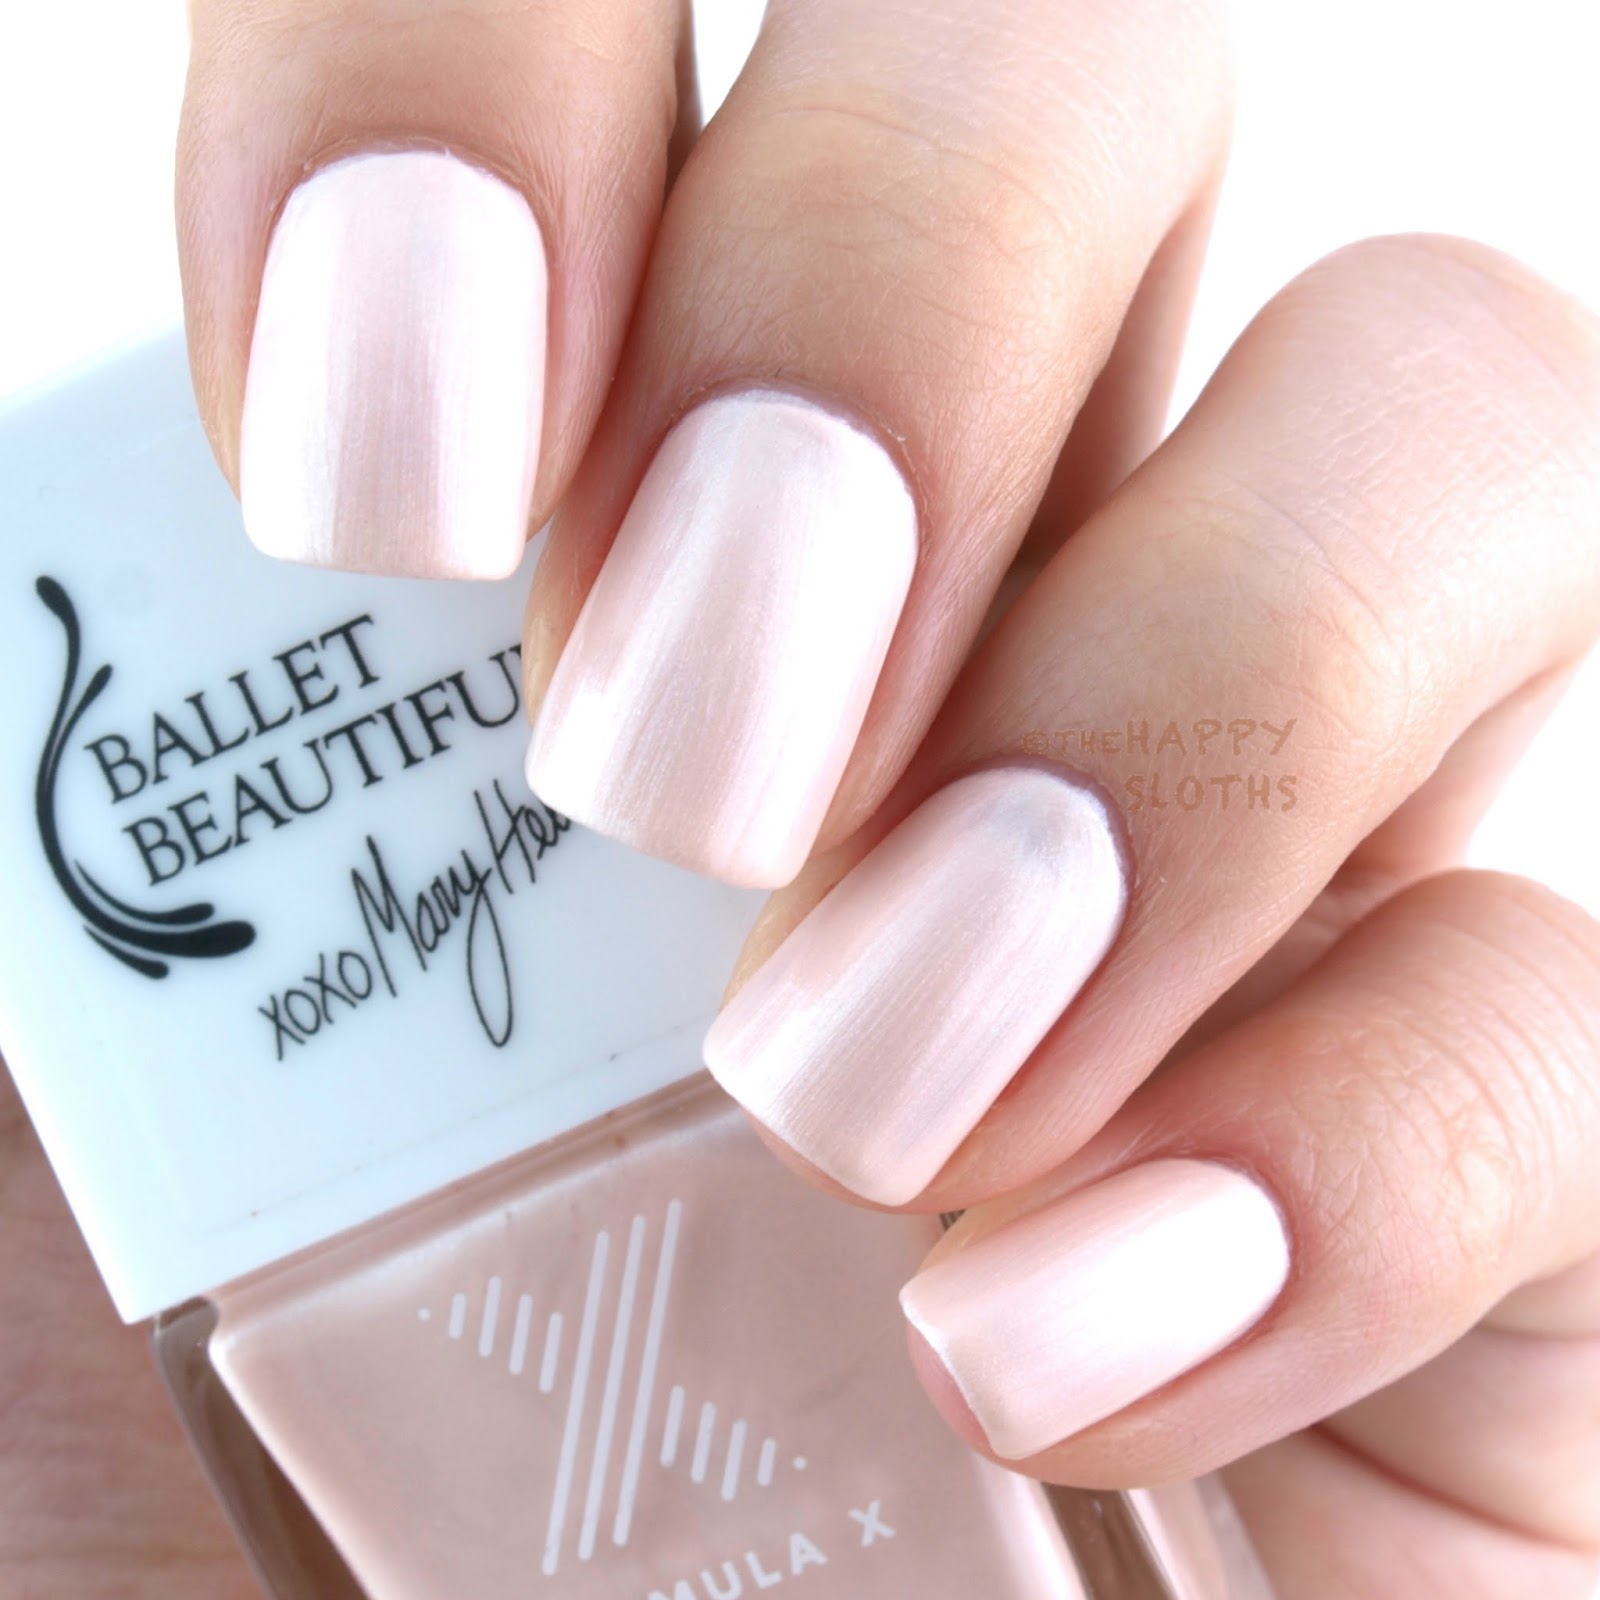 Formula X Colorcurators Ballet Beautiful Collection Review And Swatches The Happy Sloths